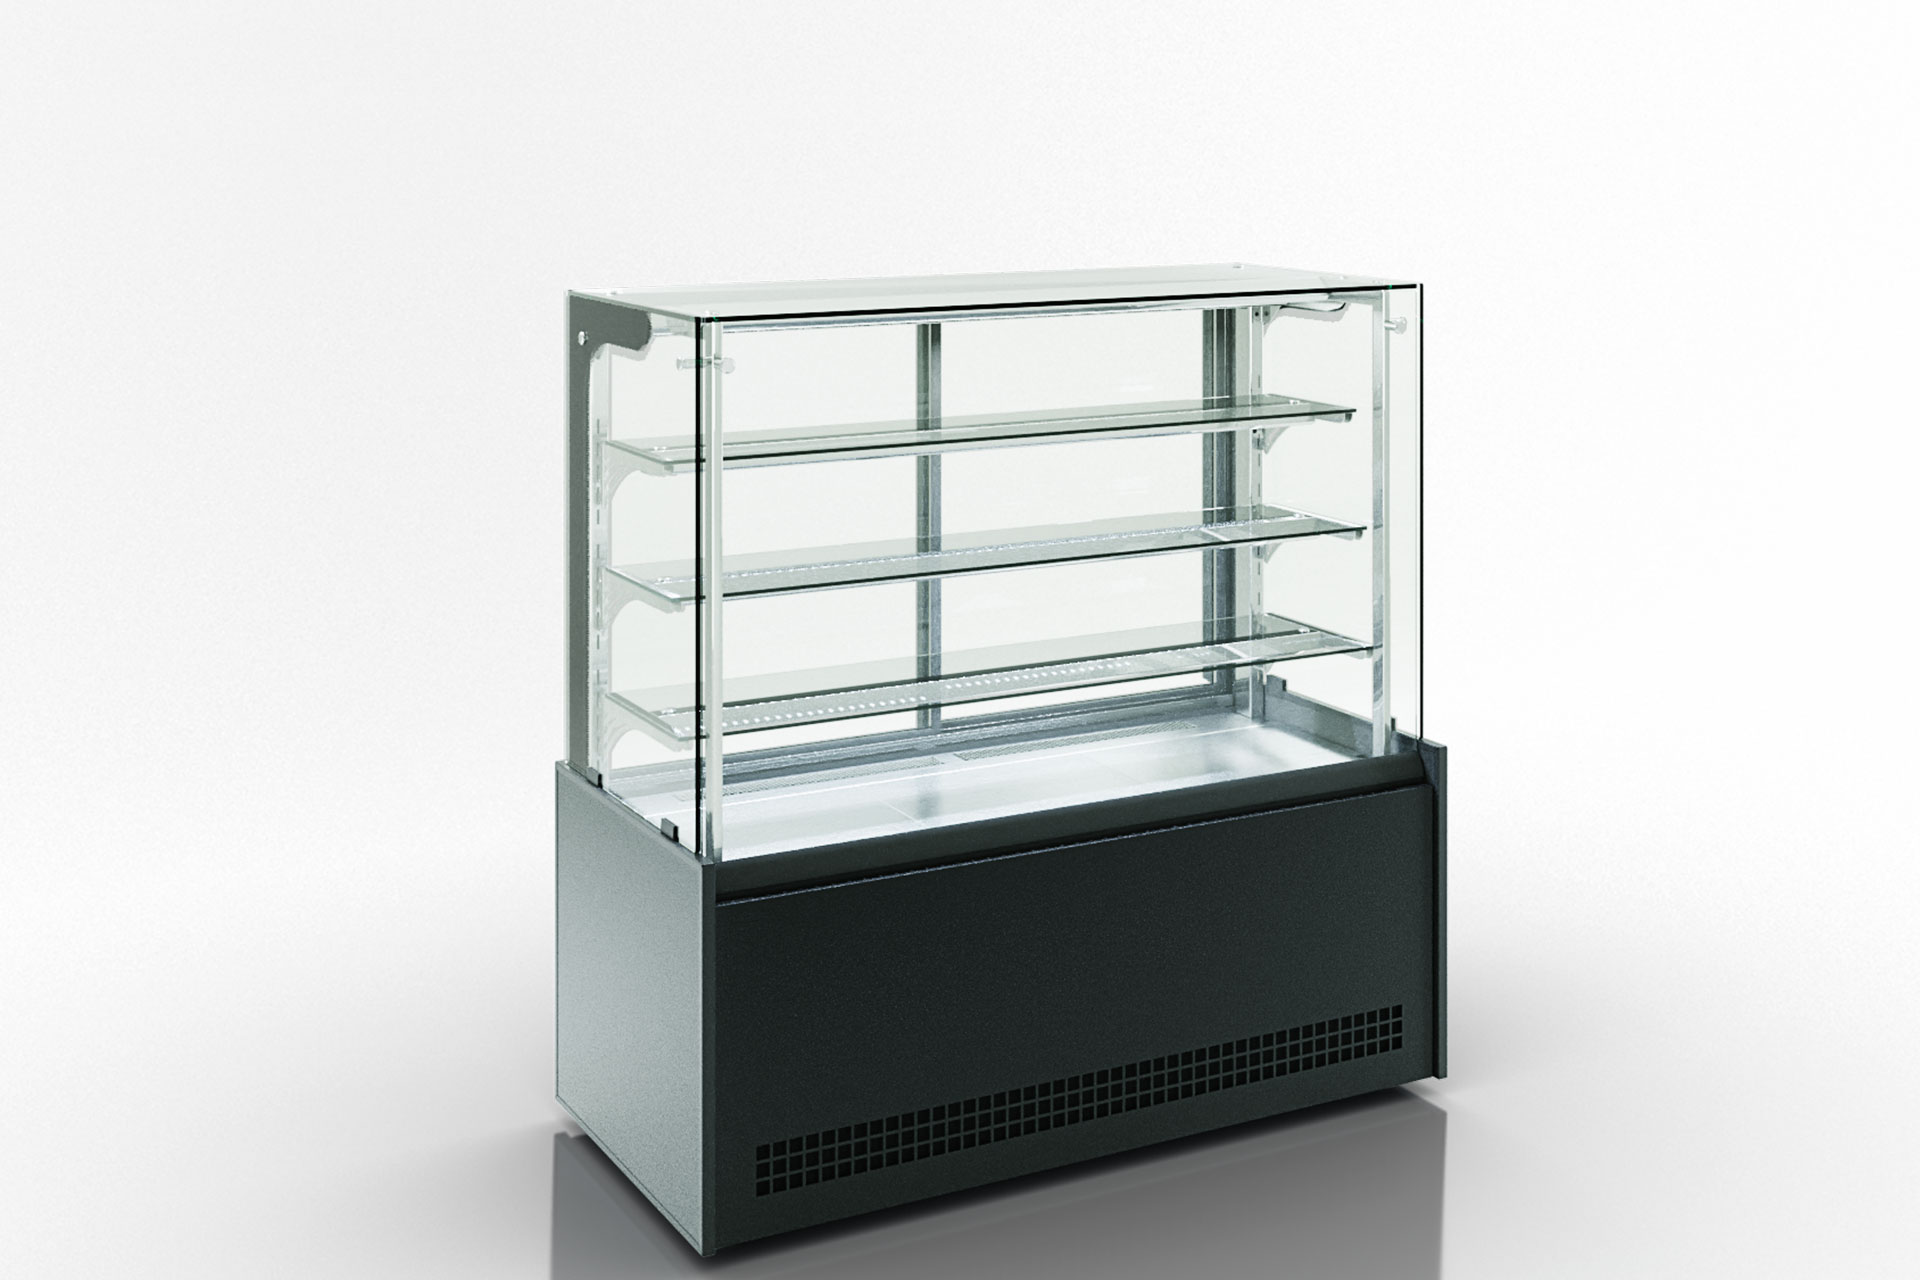 Confectionery counter Dakota AC 060 patisserie OS 130-DLA